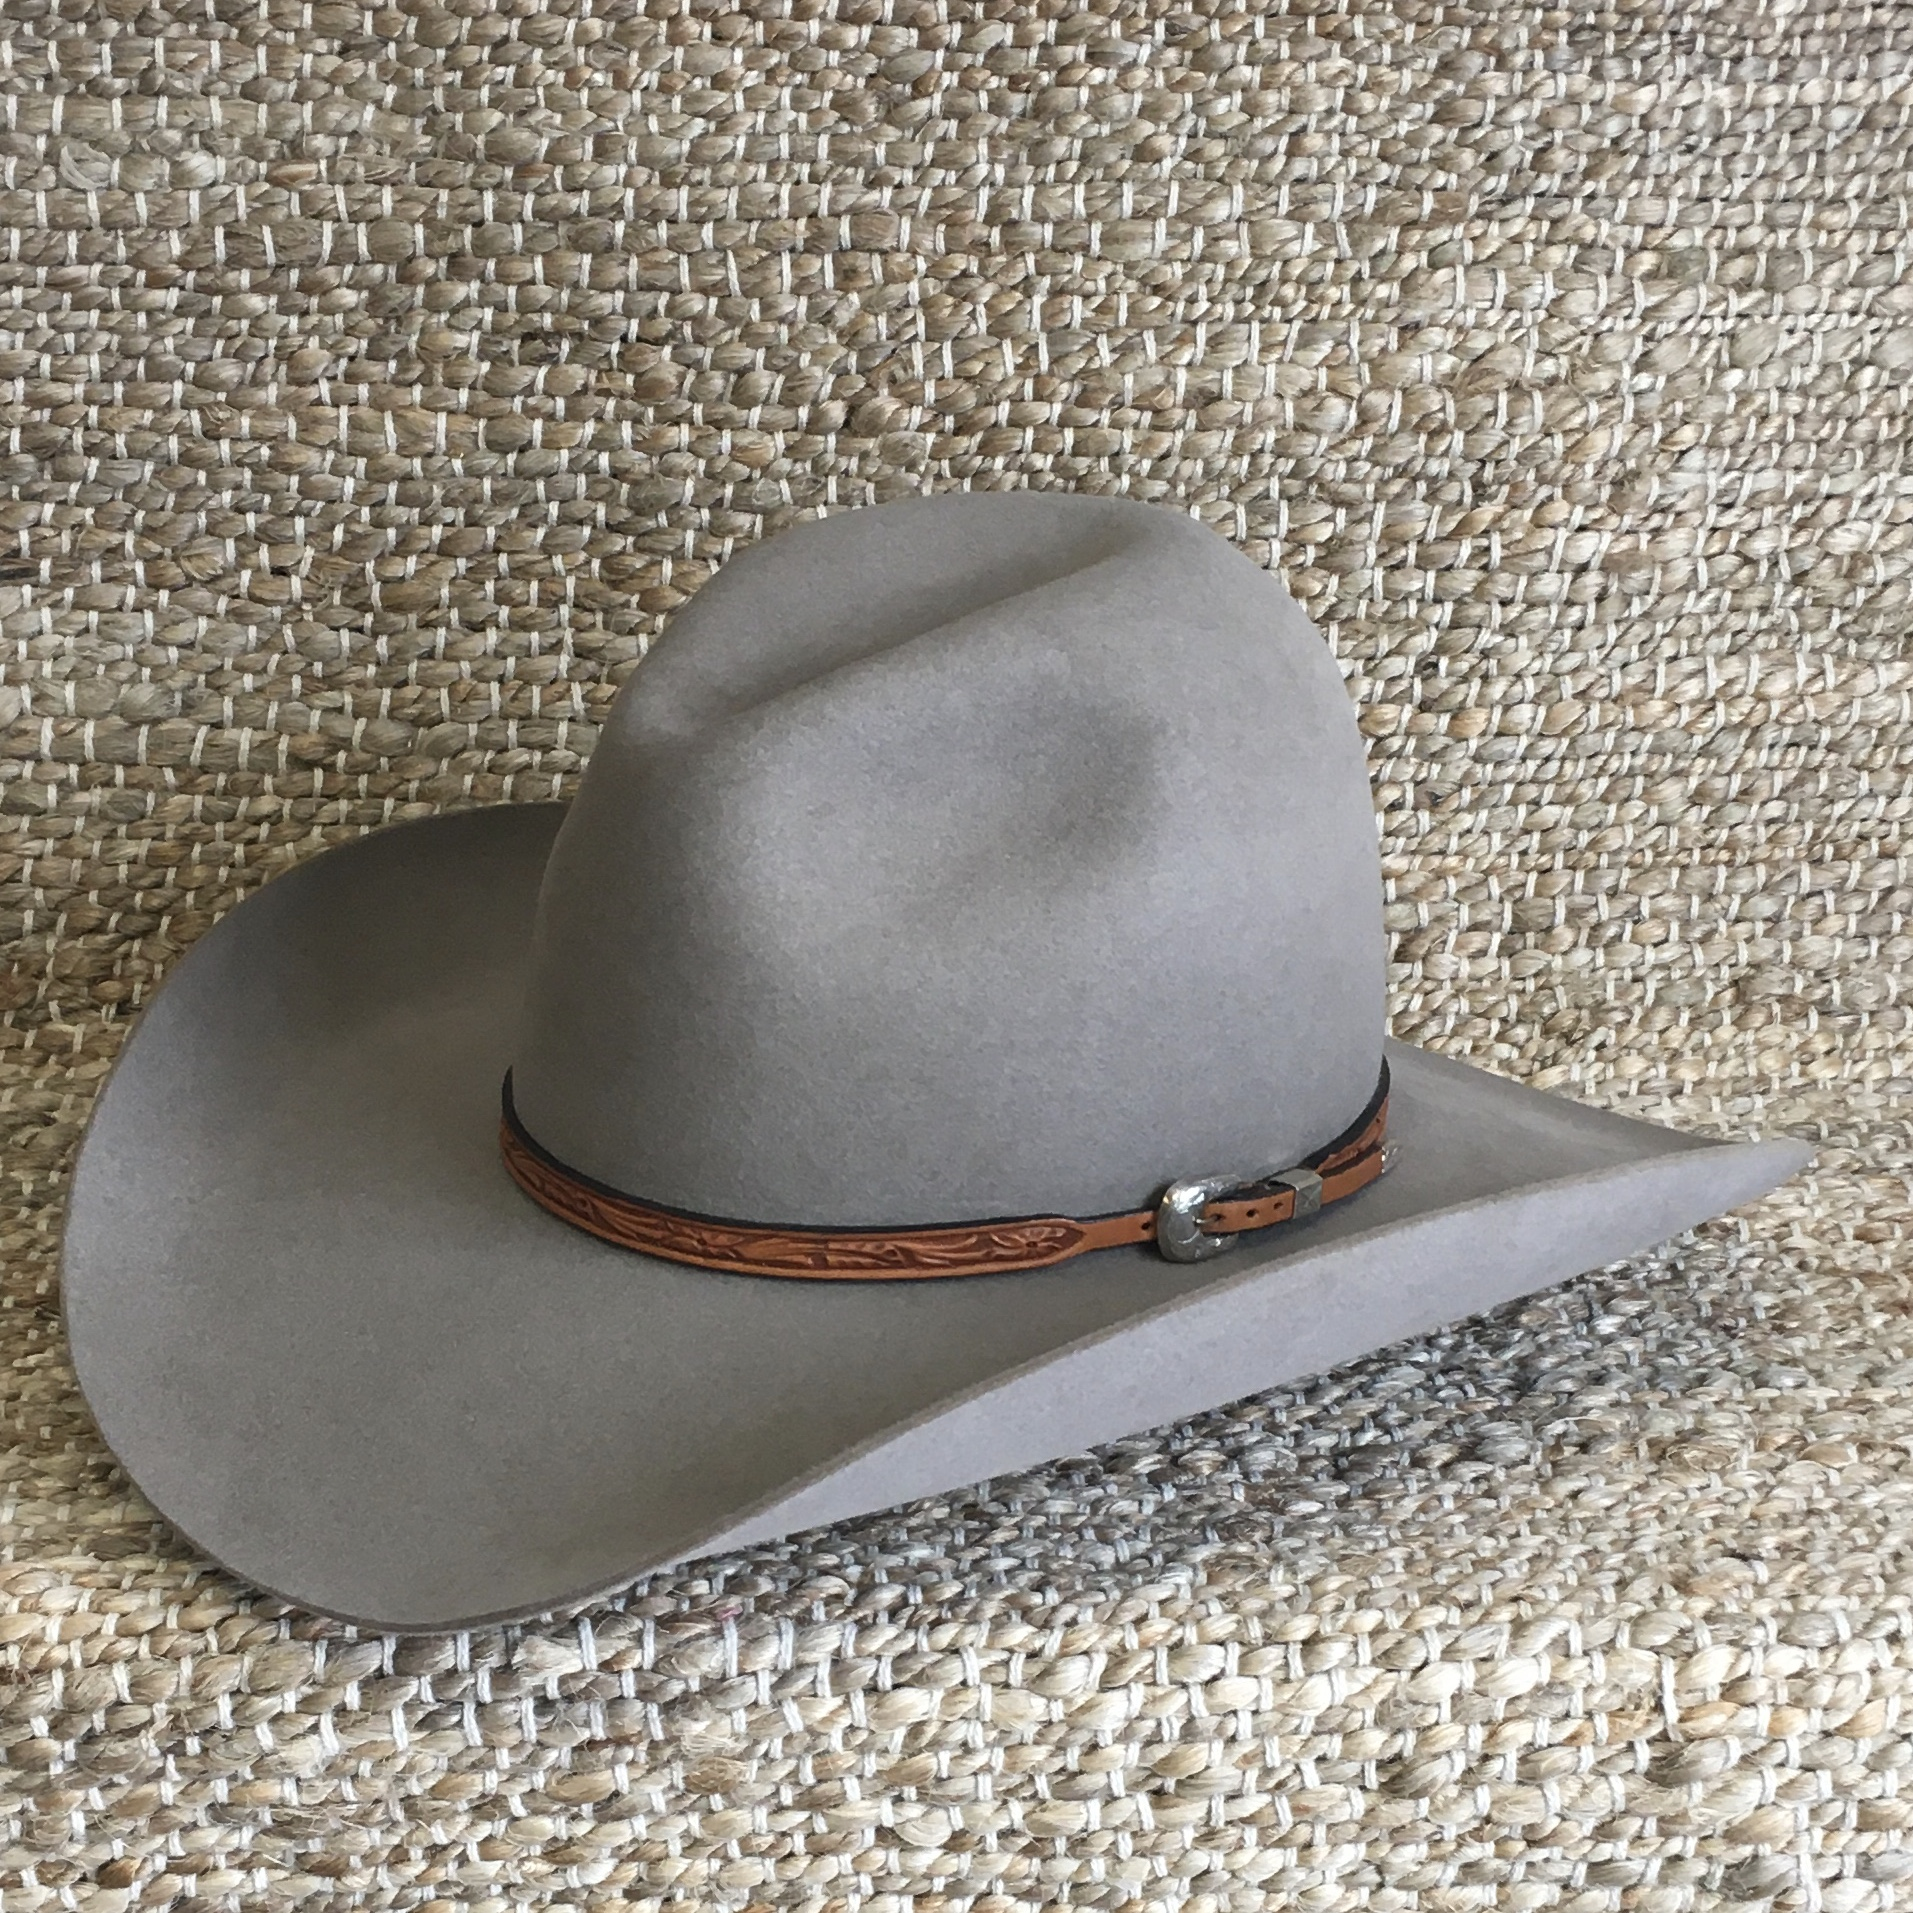 WILD ROSE TOOLED HAT BAND 3/8-1/4 NAT (4 AVAILABLE)